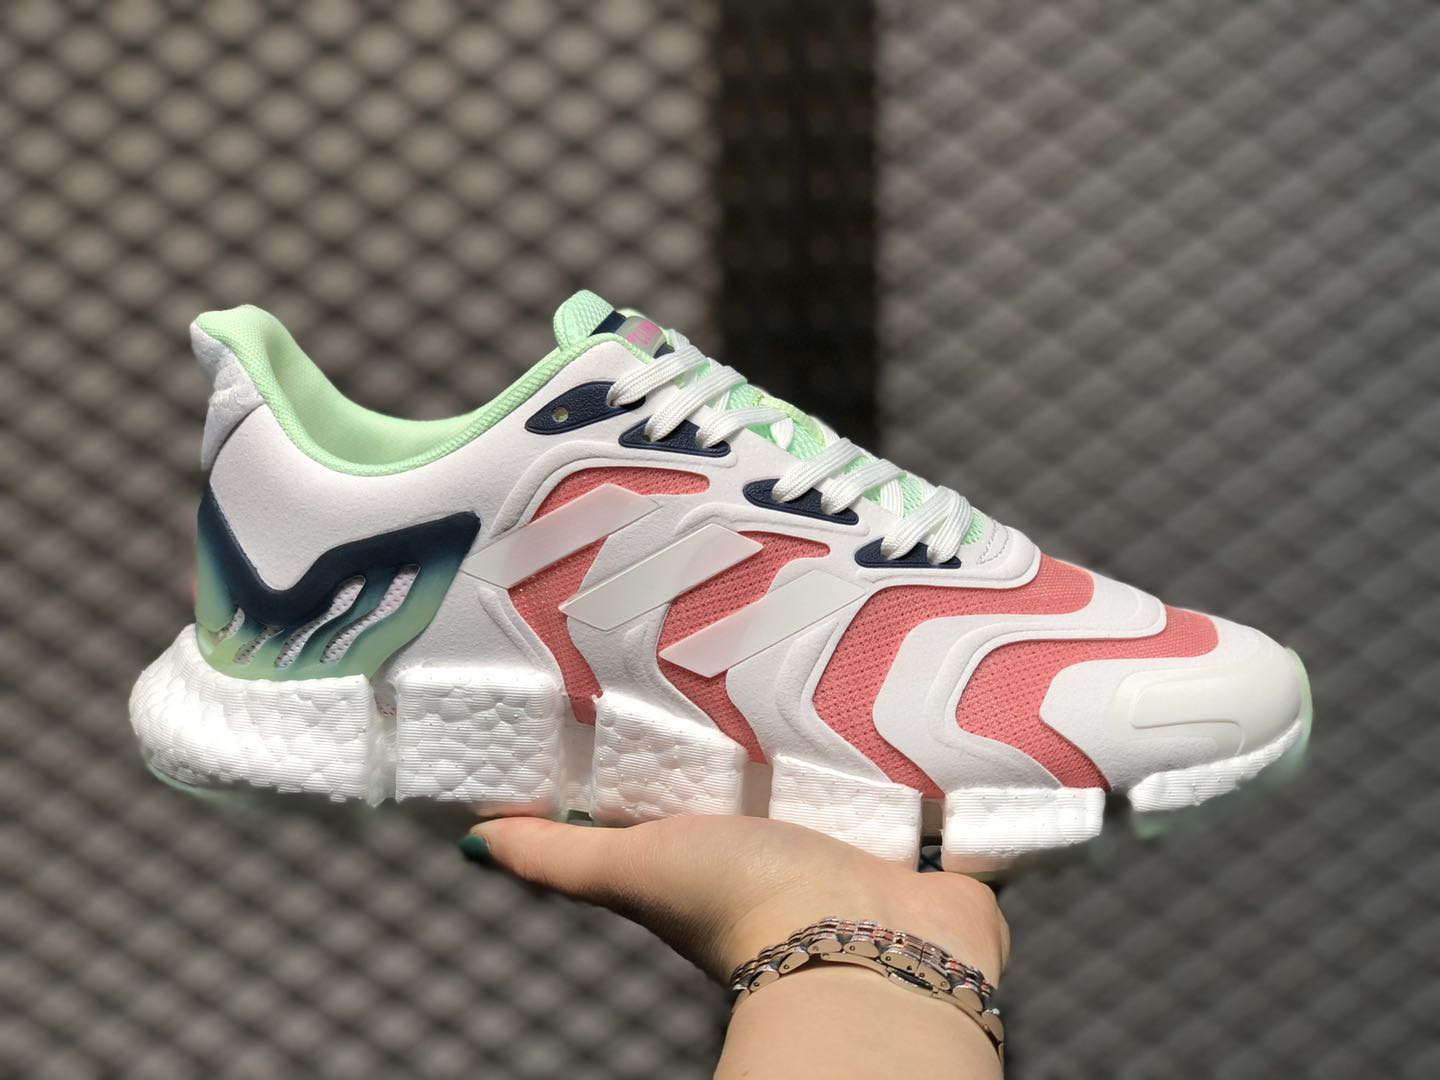 Adidas Wmns Climacool Cloud White/Pink-Green Running Shoes To Buy FX7849